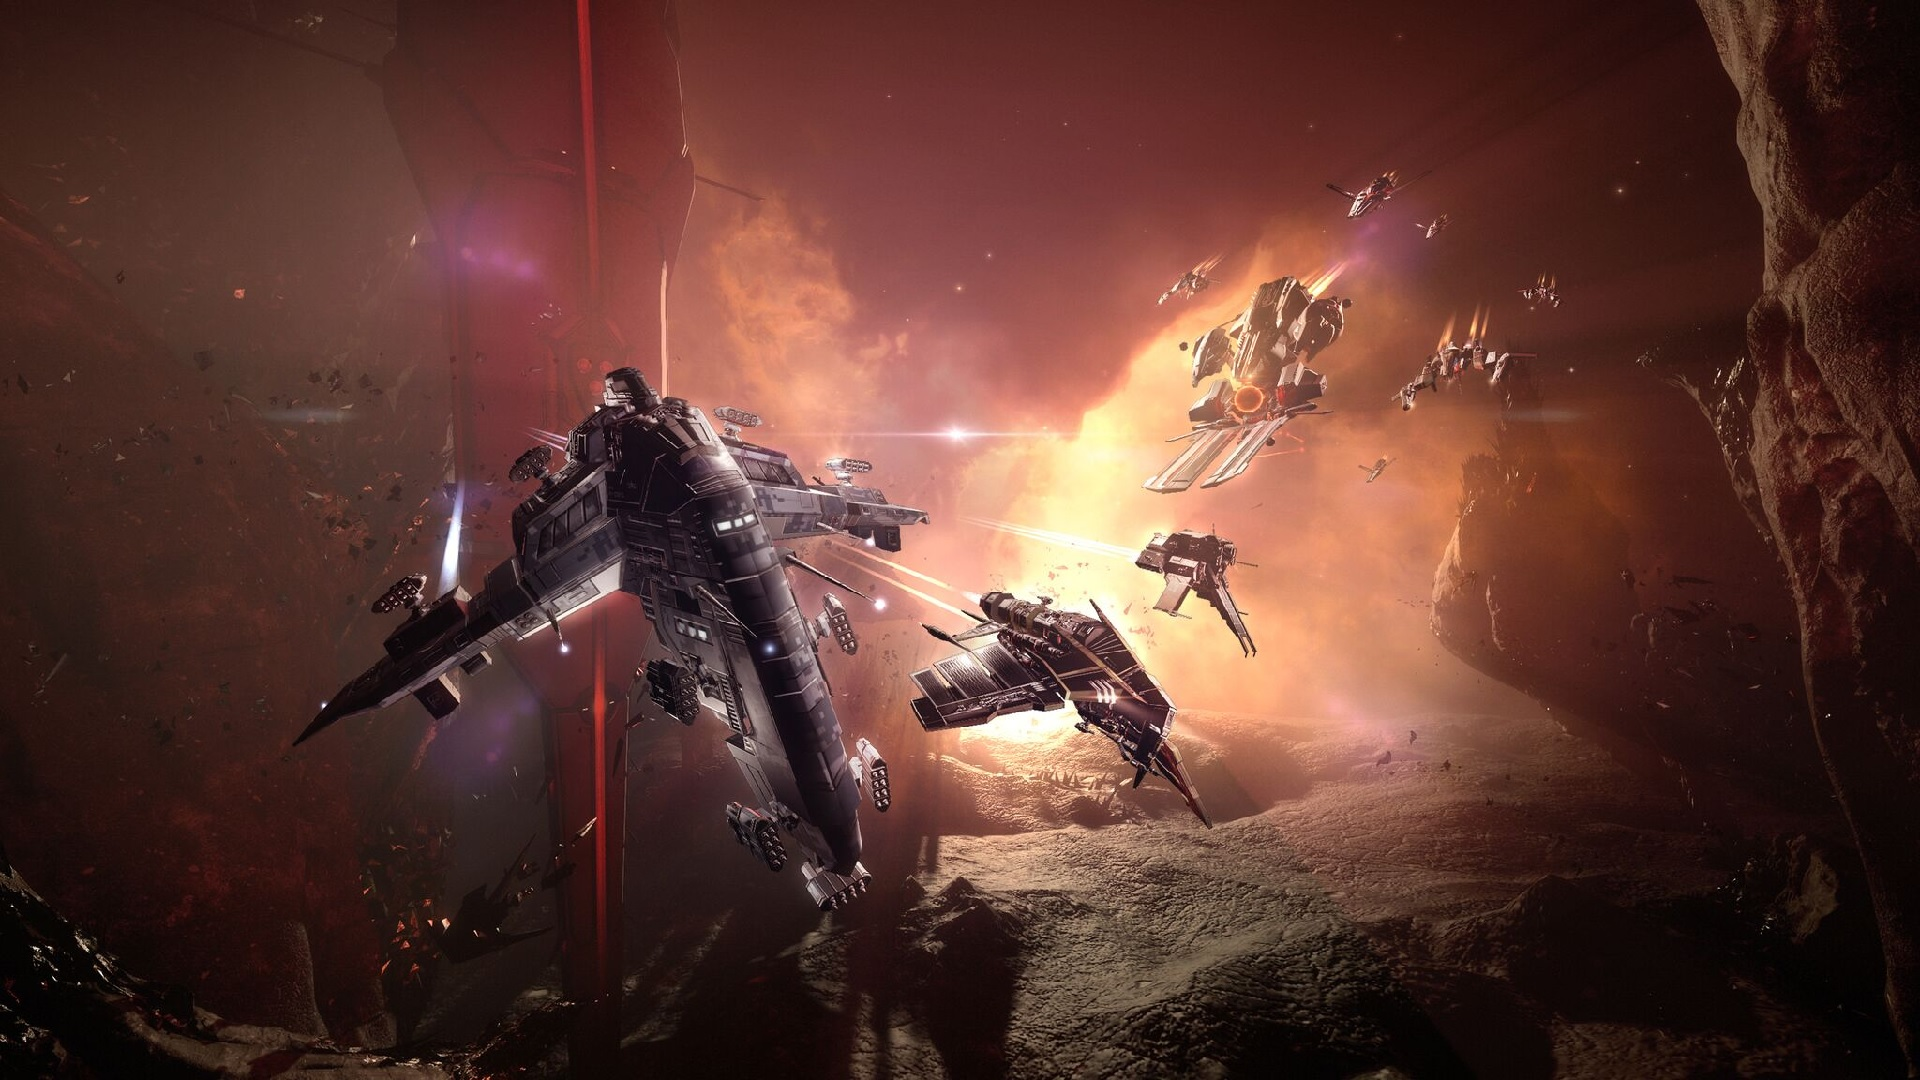 The next EVE Online update makes murder into an Easter egg hunt, because EVE Online